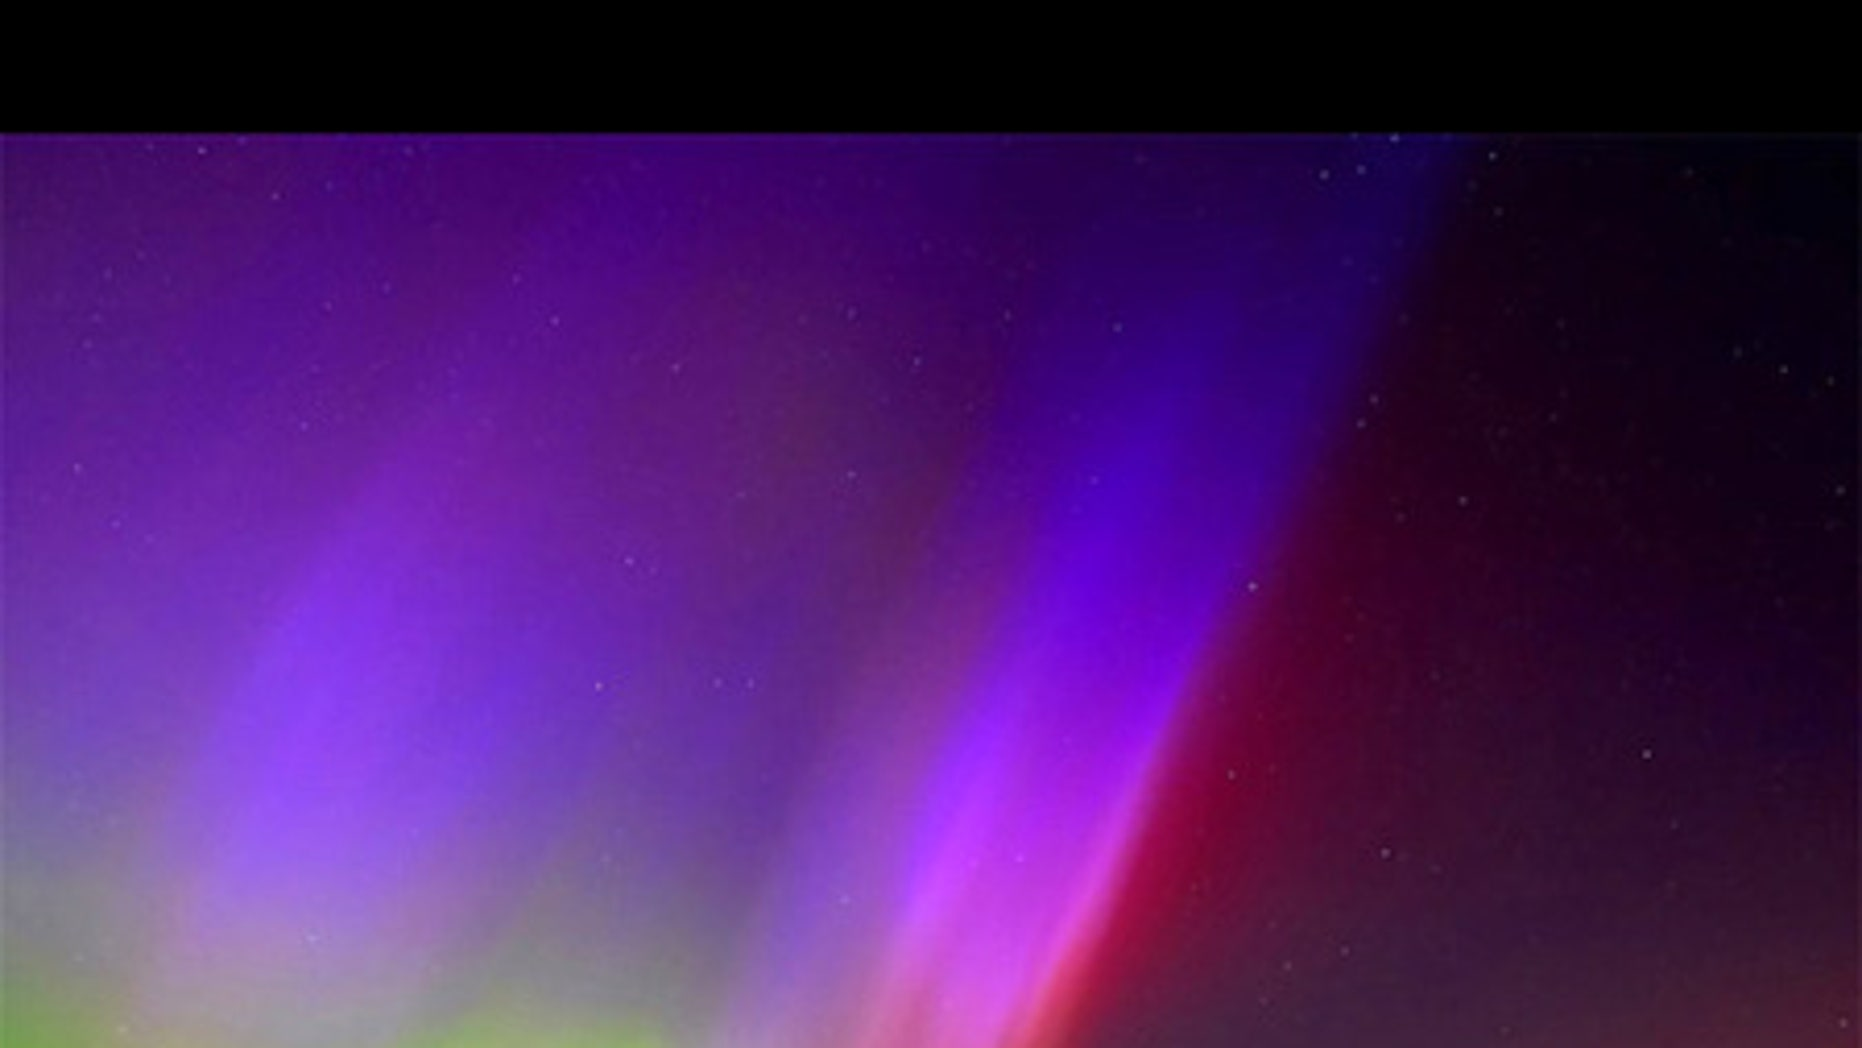 The aurora borealis, also known as the northern lights, five miles outside Kearney, Neb., on the evening of May 14, 2005.